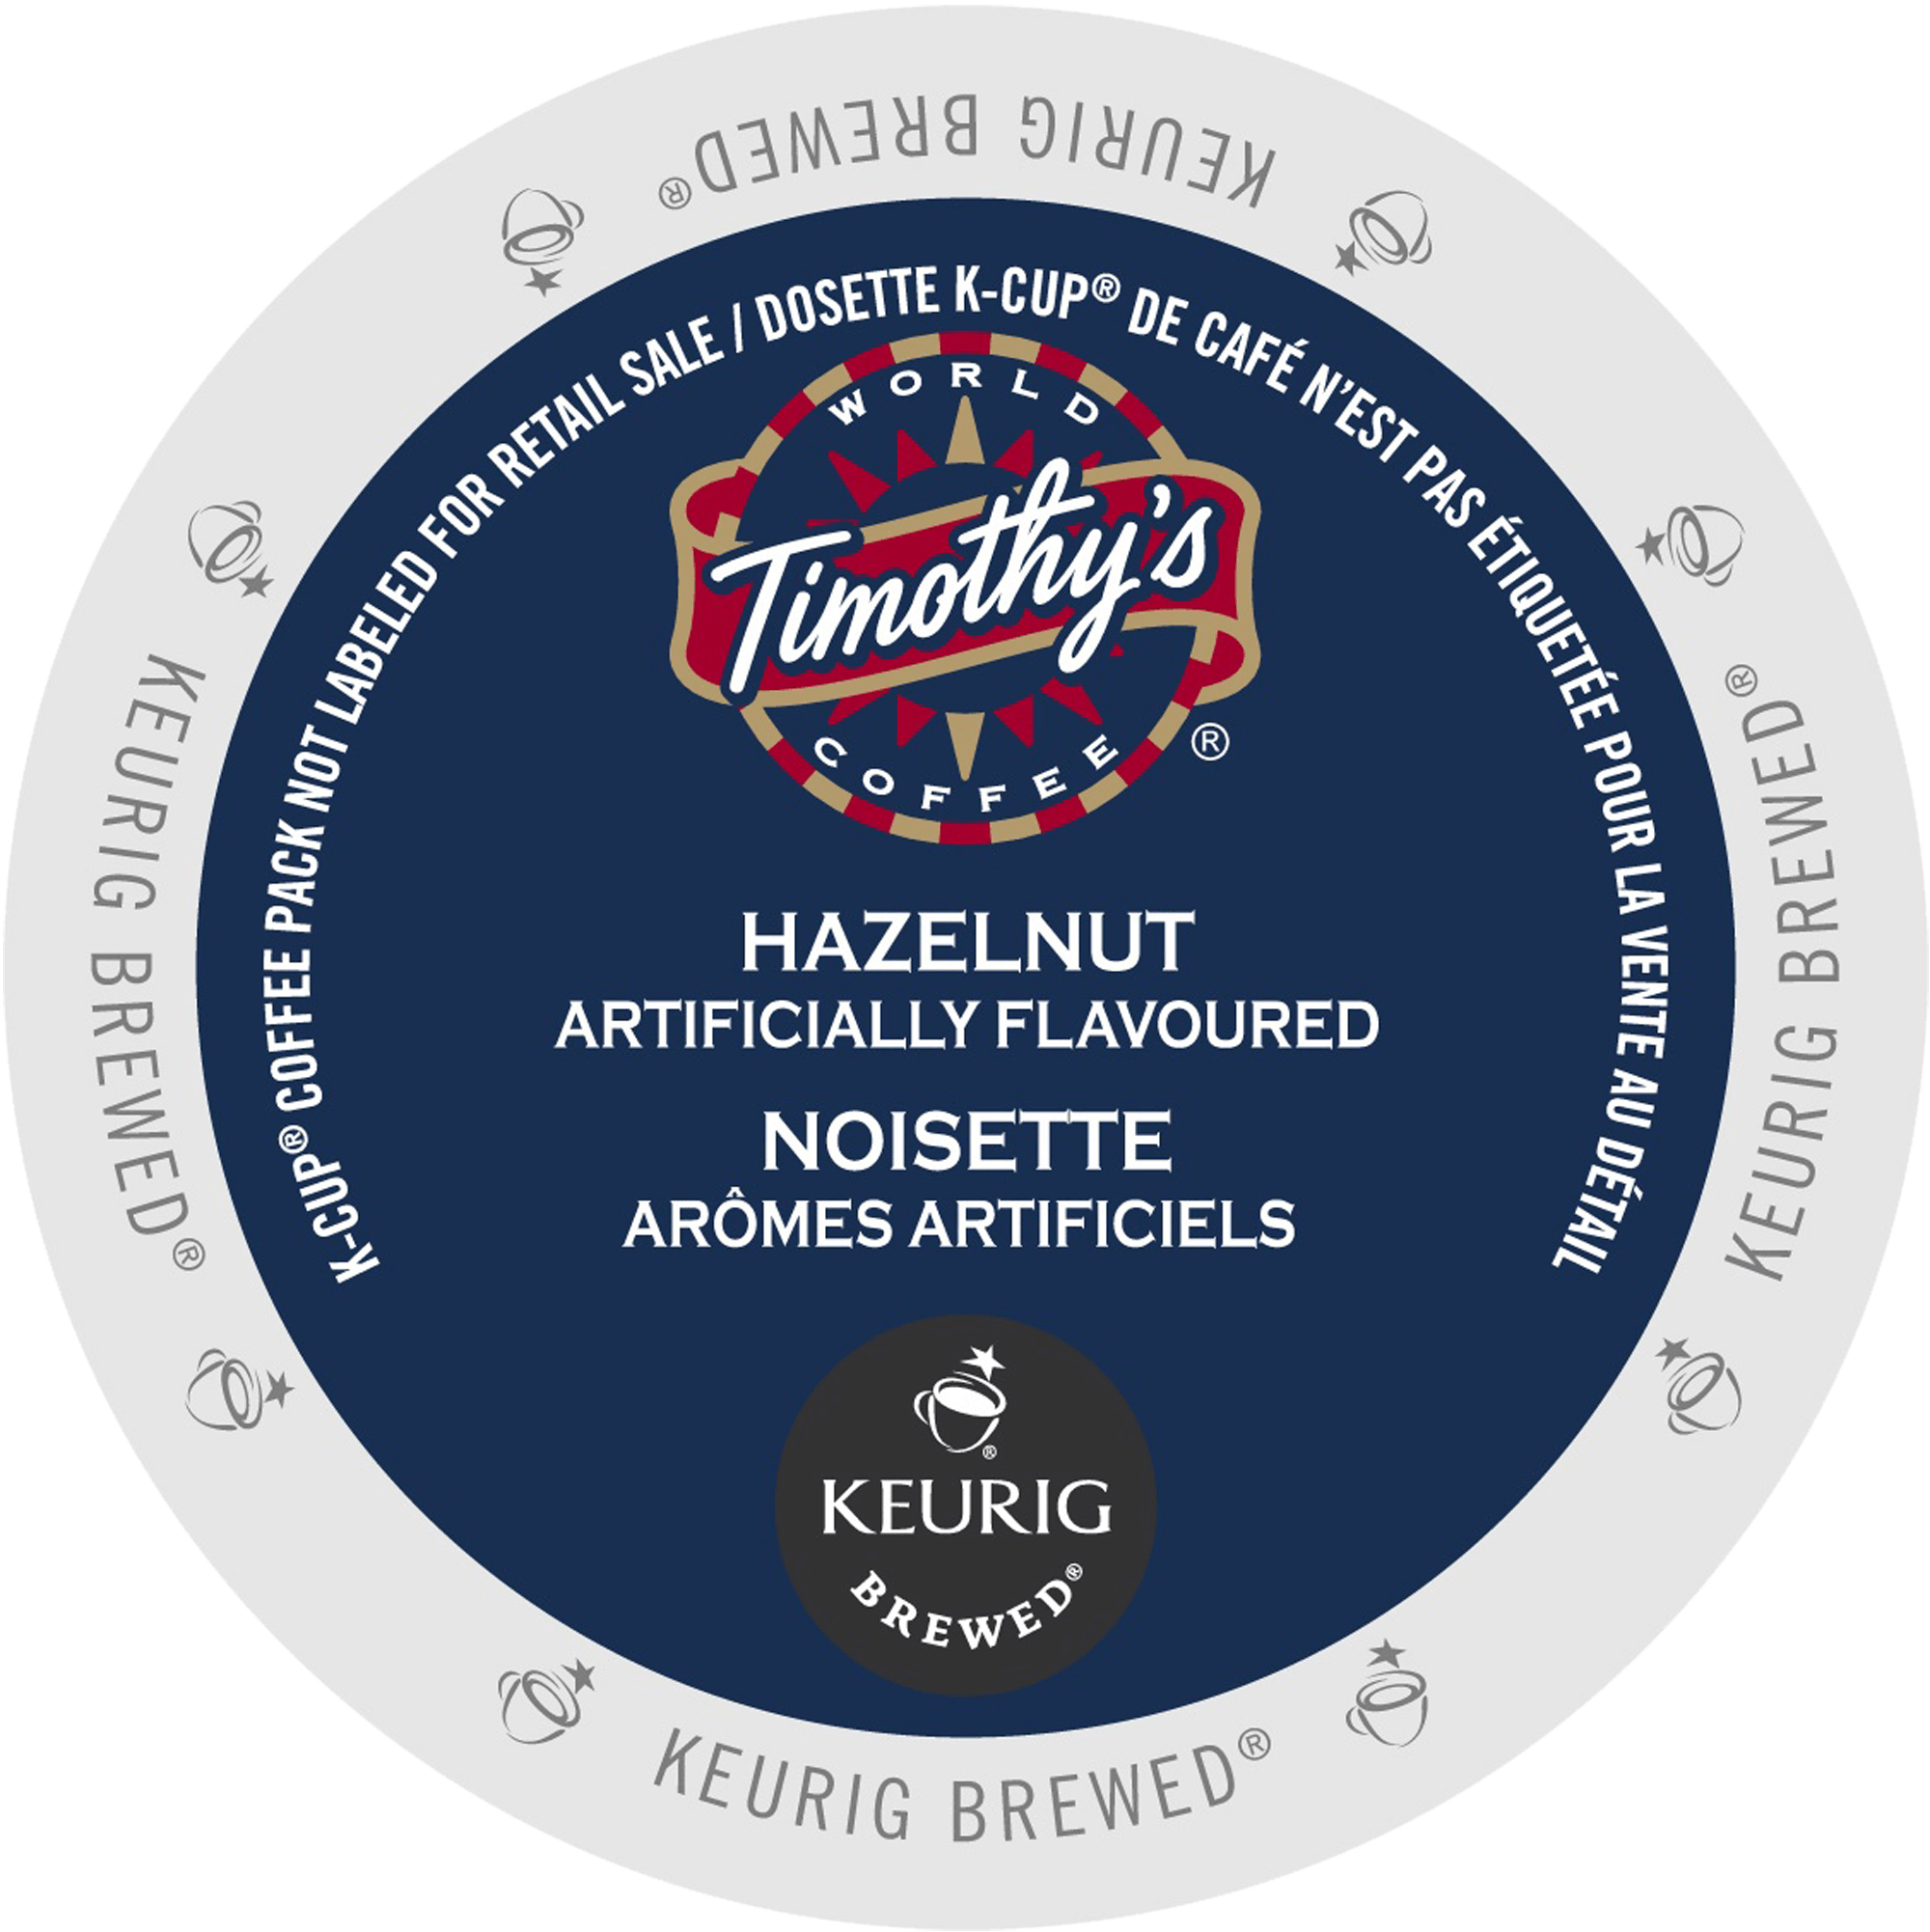 hazelnut-coffee-timothys-k-cup_ca_general (1)